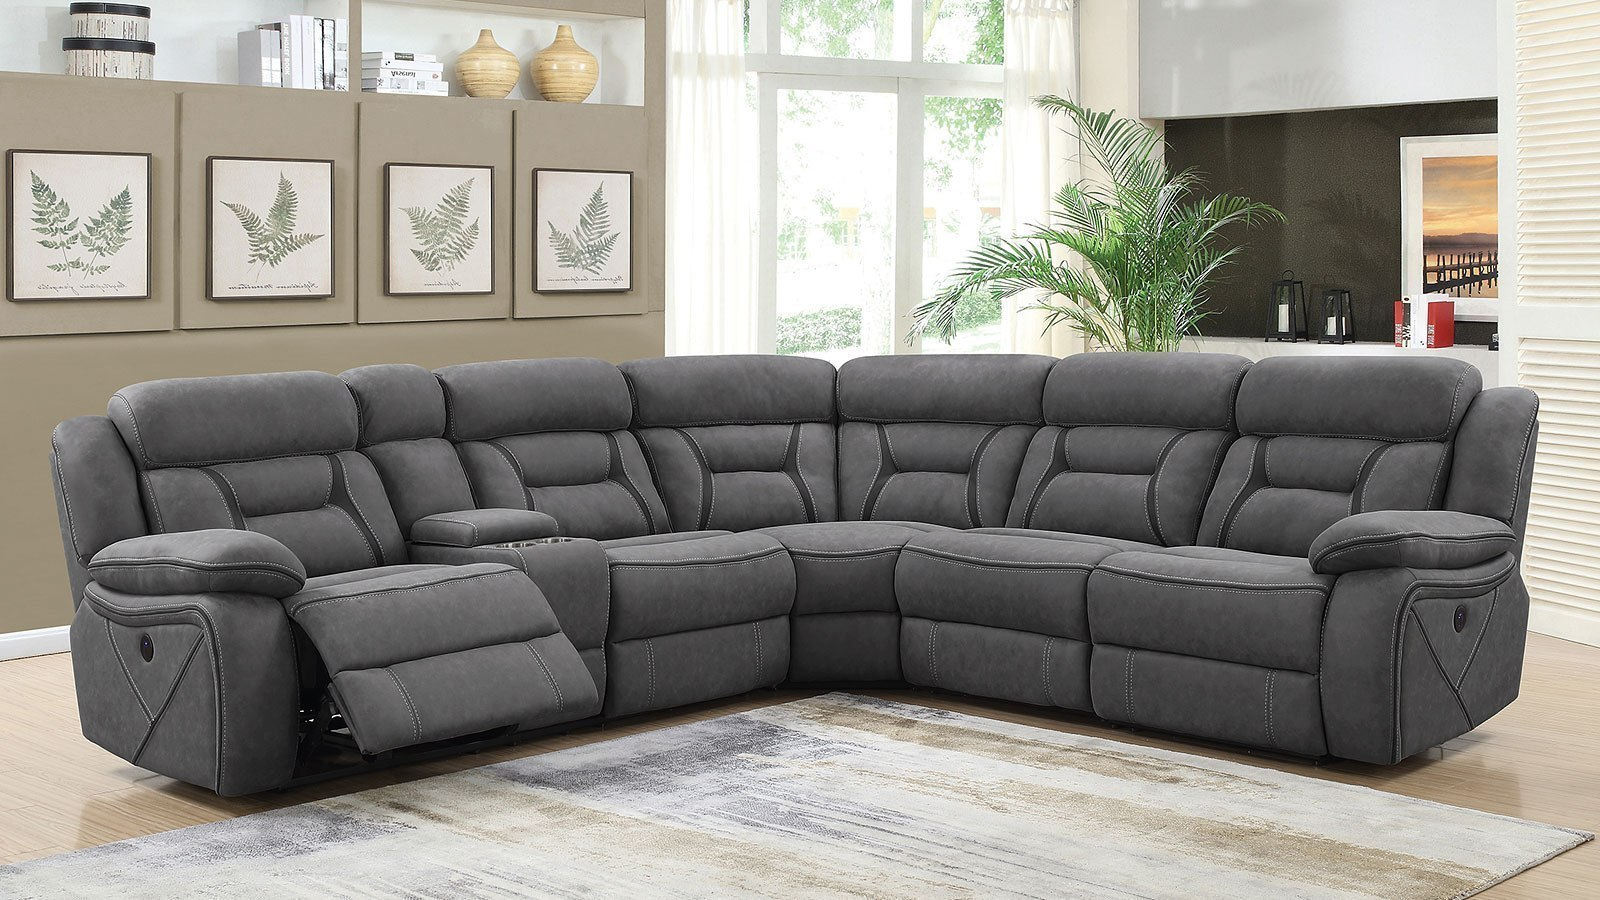 Camargue Power Reclining Sectional (Grey)